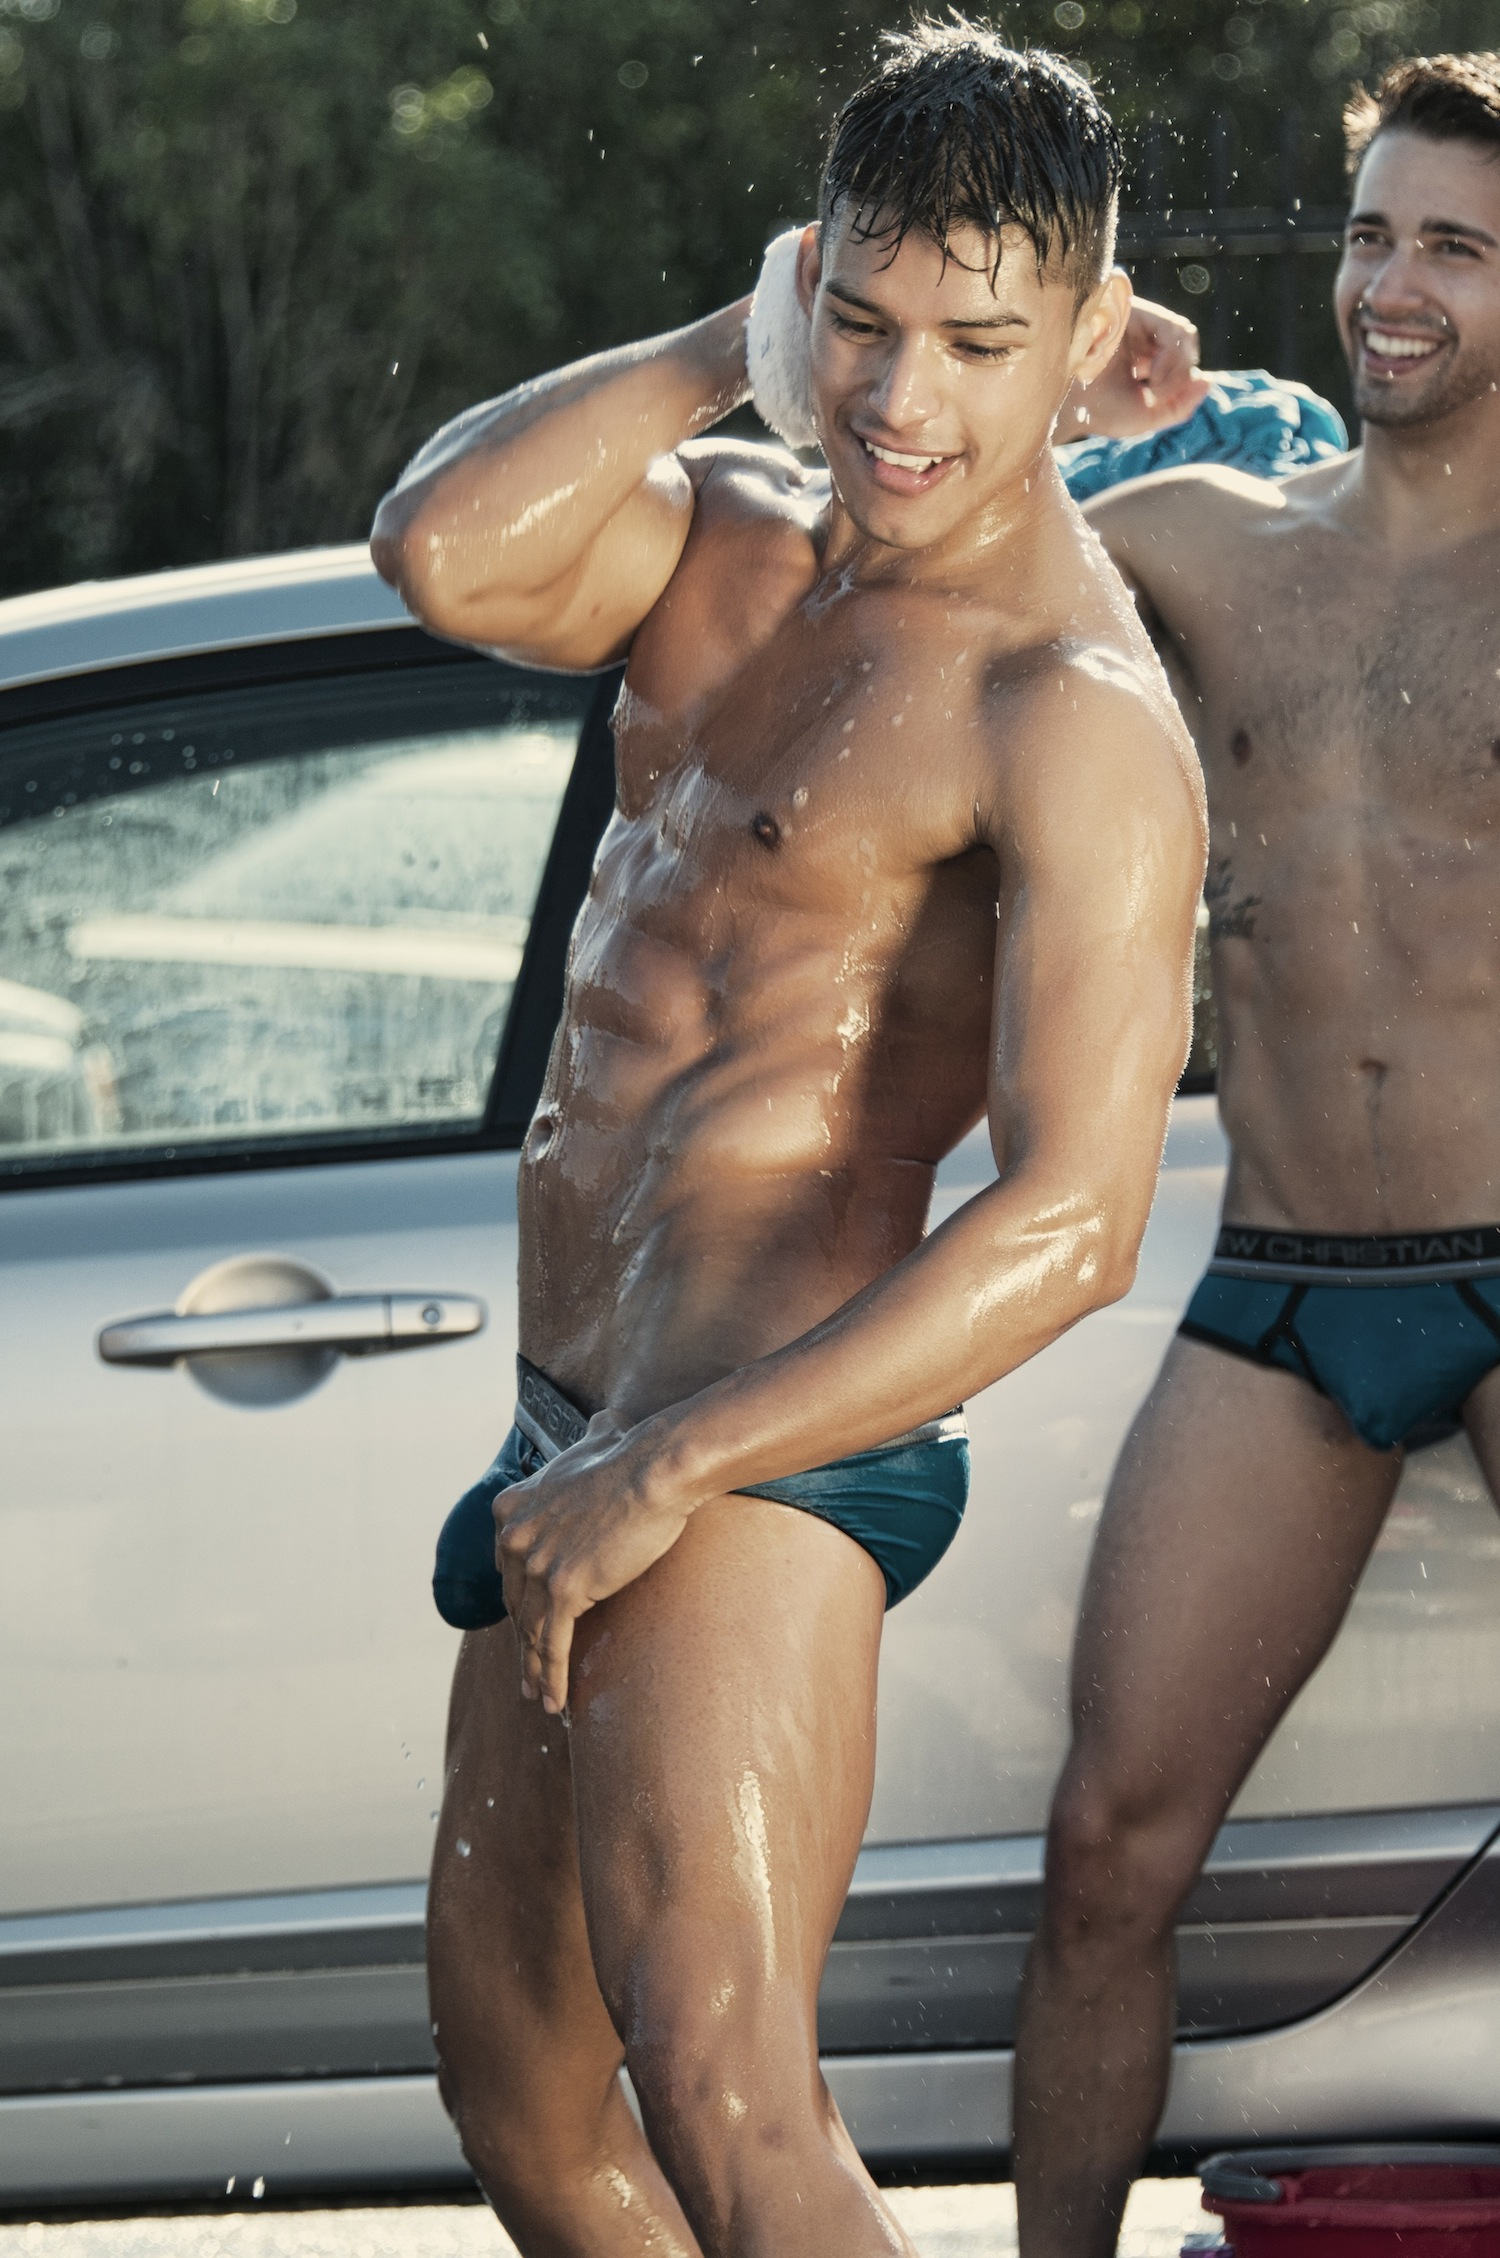 Young guys washing a car